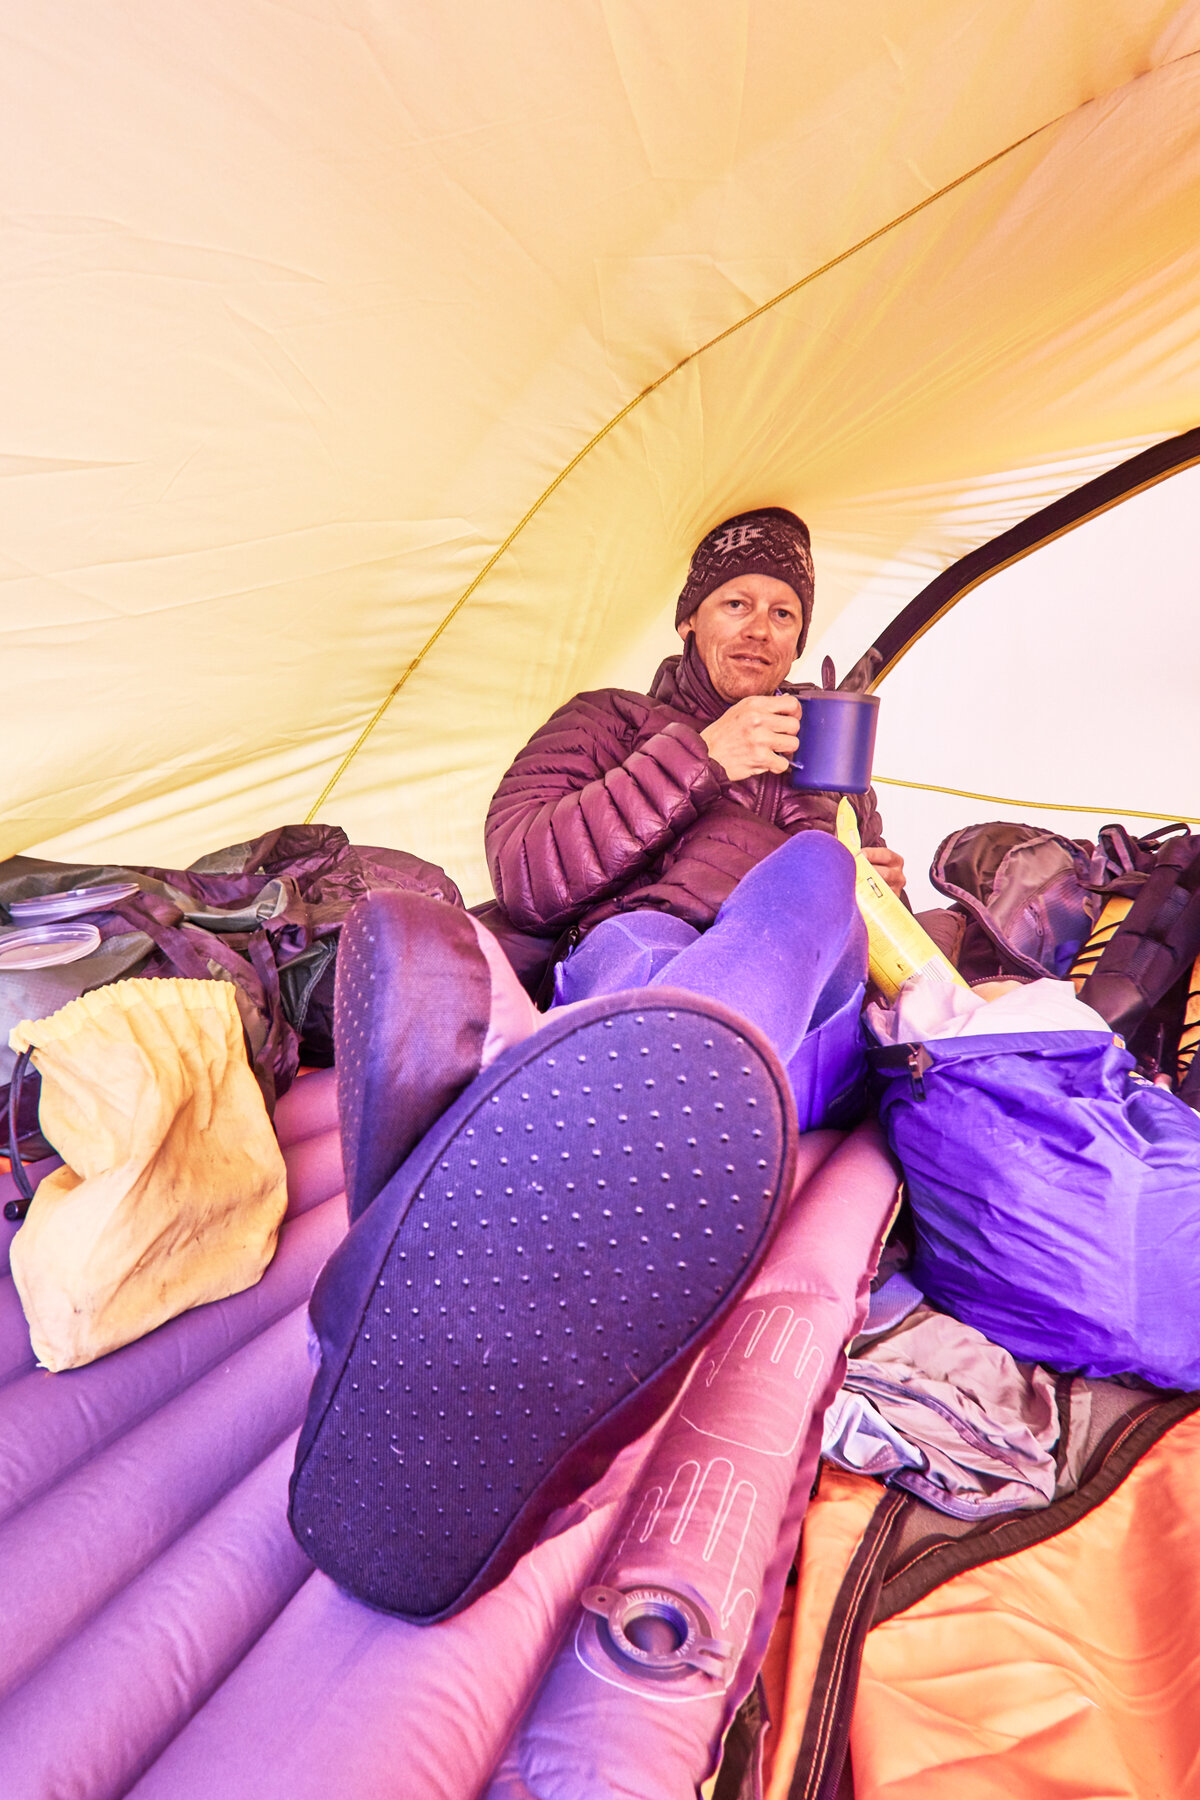 Enjoying a hot drink inside expedition tent